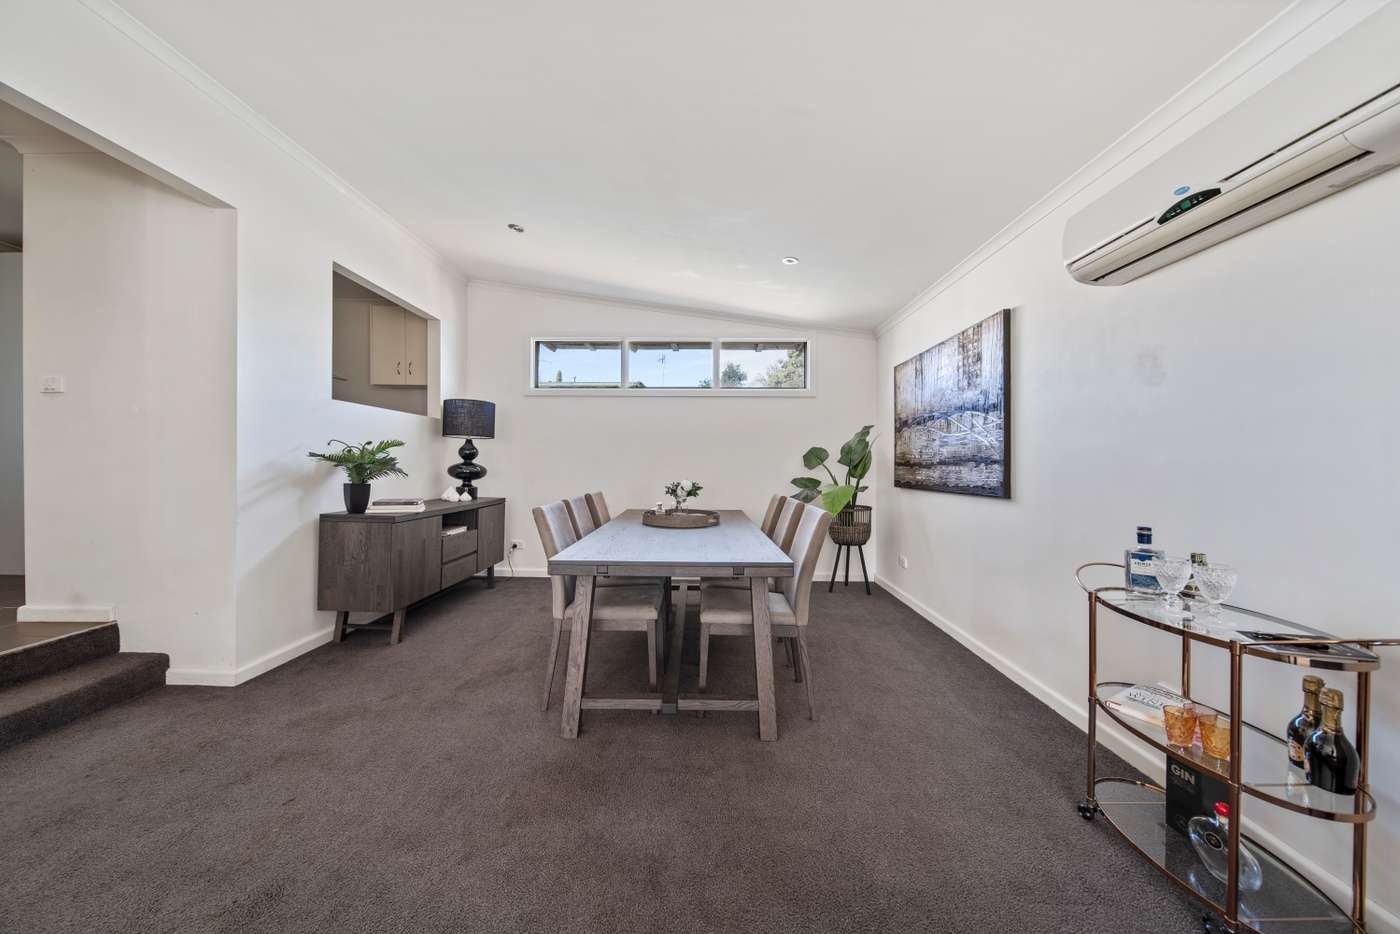 Fifth view of Homely house listing, 90 Somerville Street, Flora Hill VIC 3550